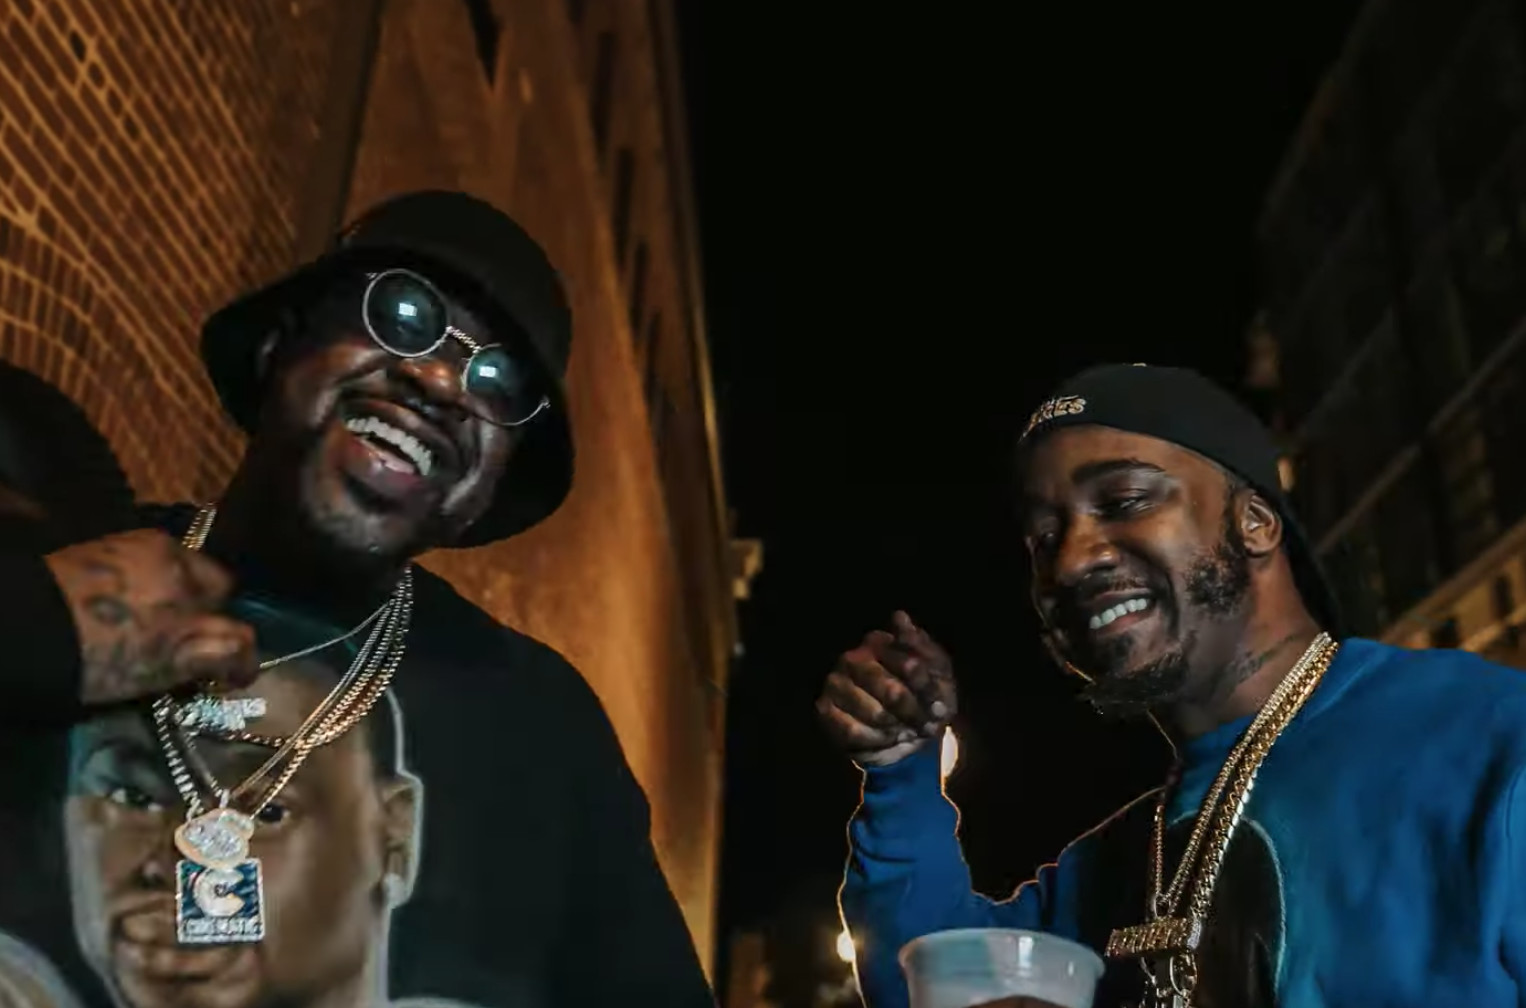 """Premiere: Smoke DZA and Benny the Butcher Drop Video for """"7:30"""" f/ Westside Gunn"""